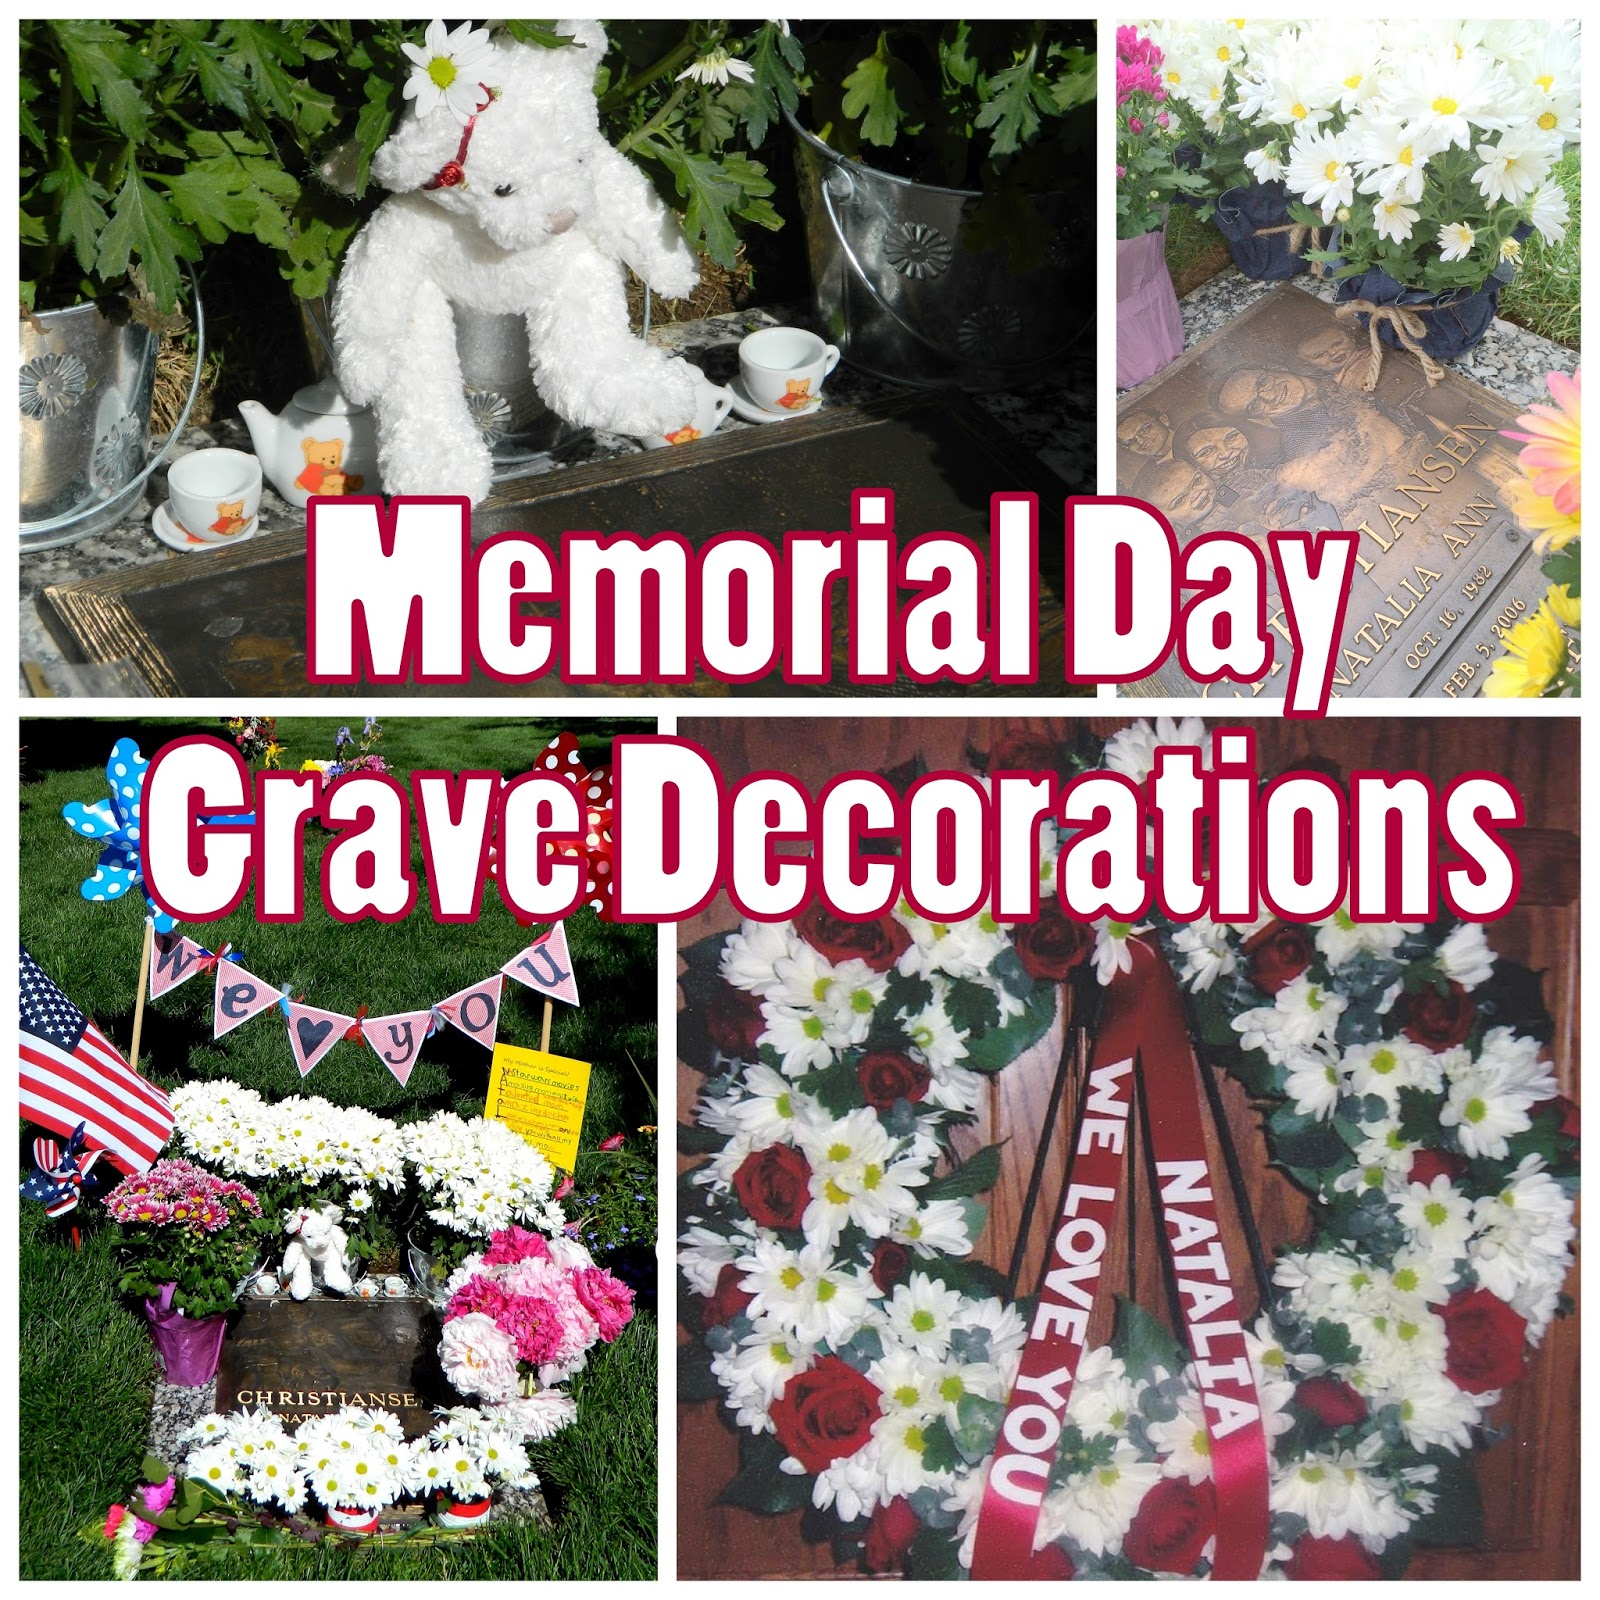 CreateJoy2Day: Memorial Day- Personalizing the Decorations